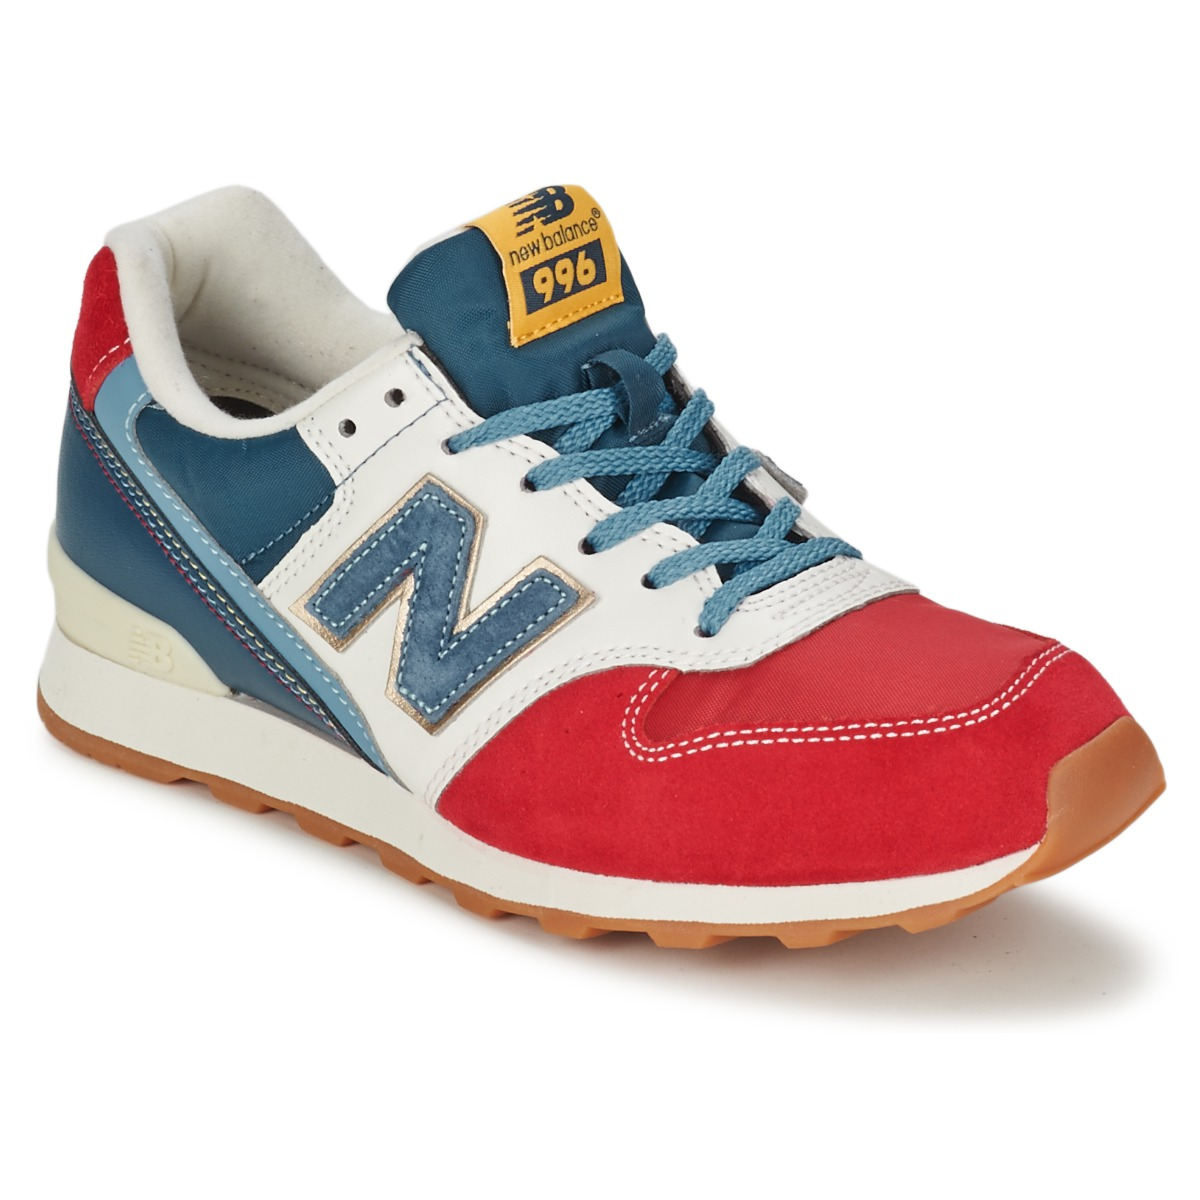 baskets basses new balance wr996 baskets femme spartoo ventes pas